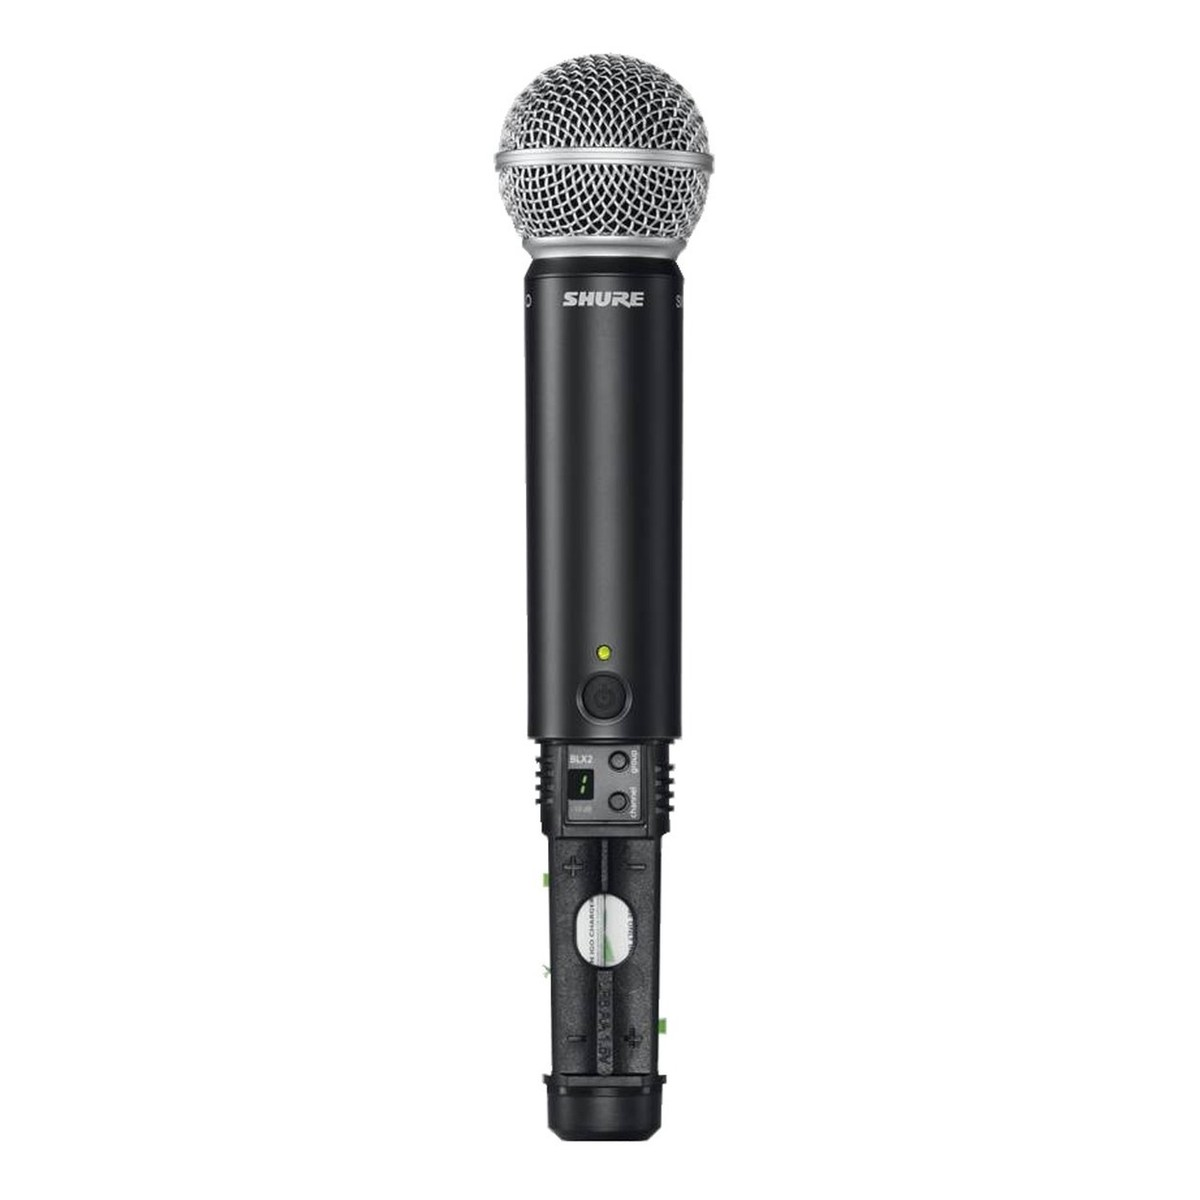 shure blx2 sm58 k3e wireless handheld microphone transmitter gear4music. Black Bedroom Furniture Sets. Home Design Ideas